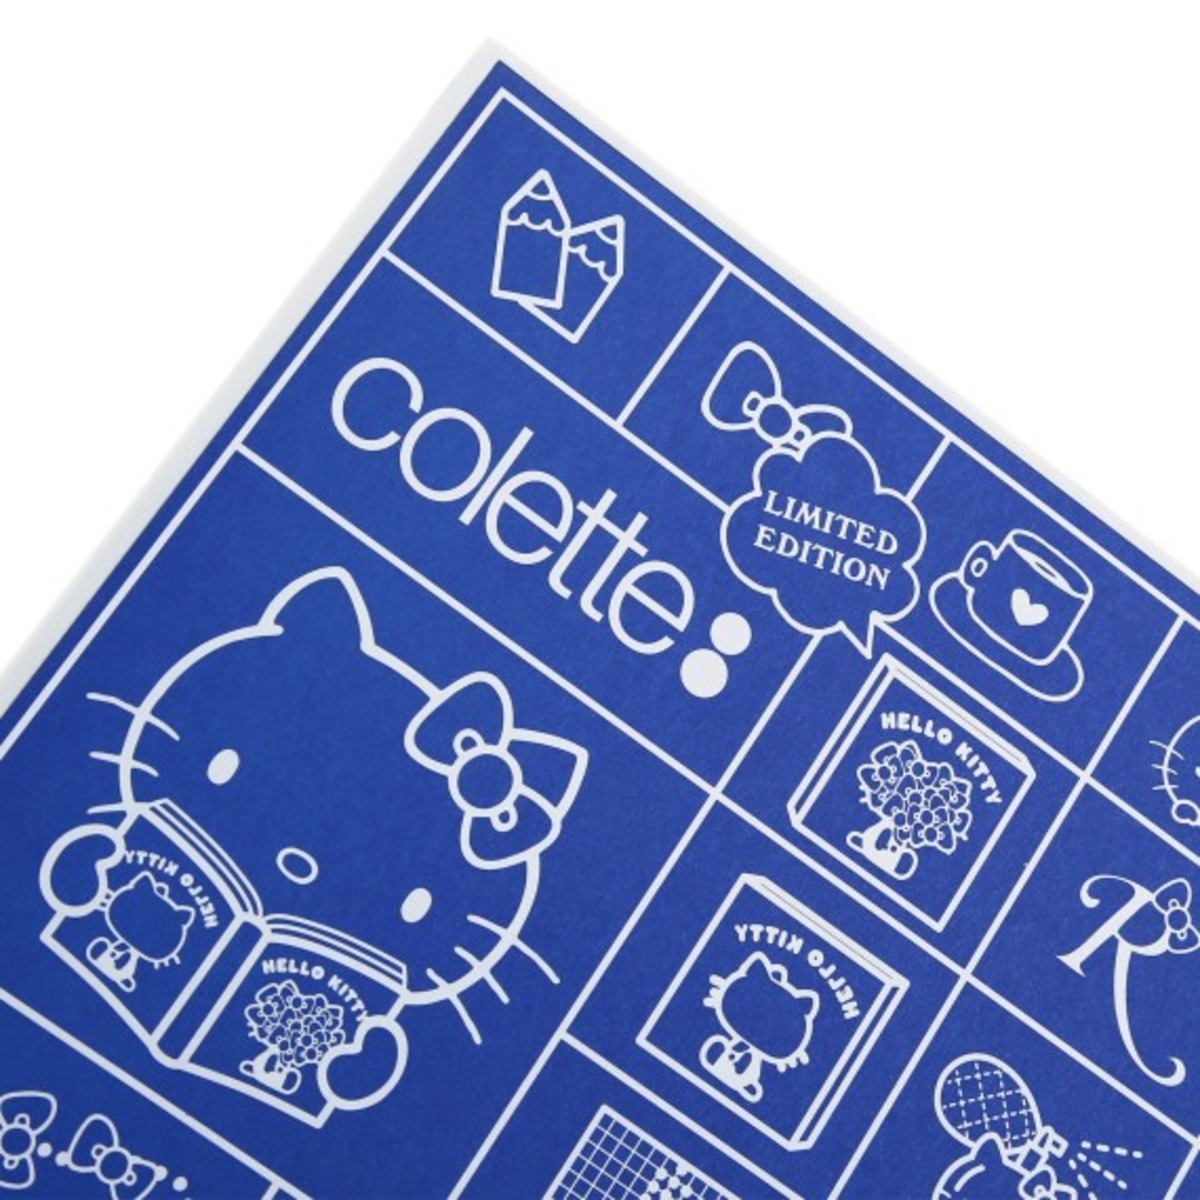 hello-kitty-collaborations-book-colette-edition-06